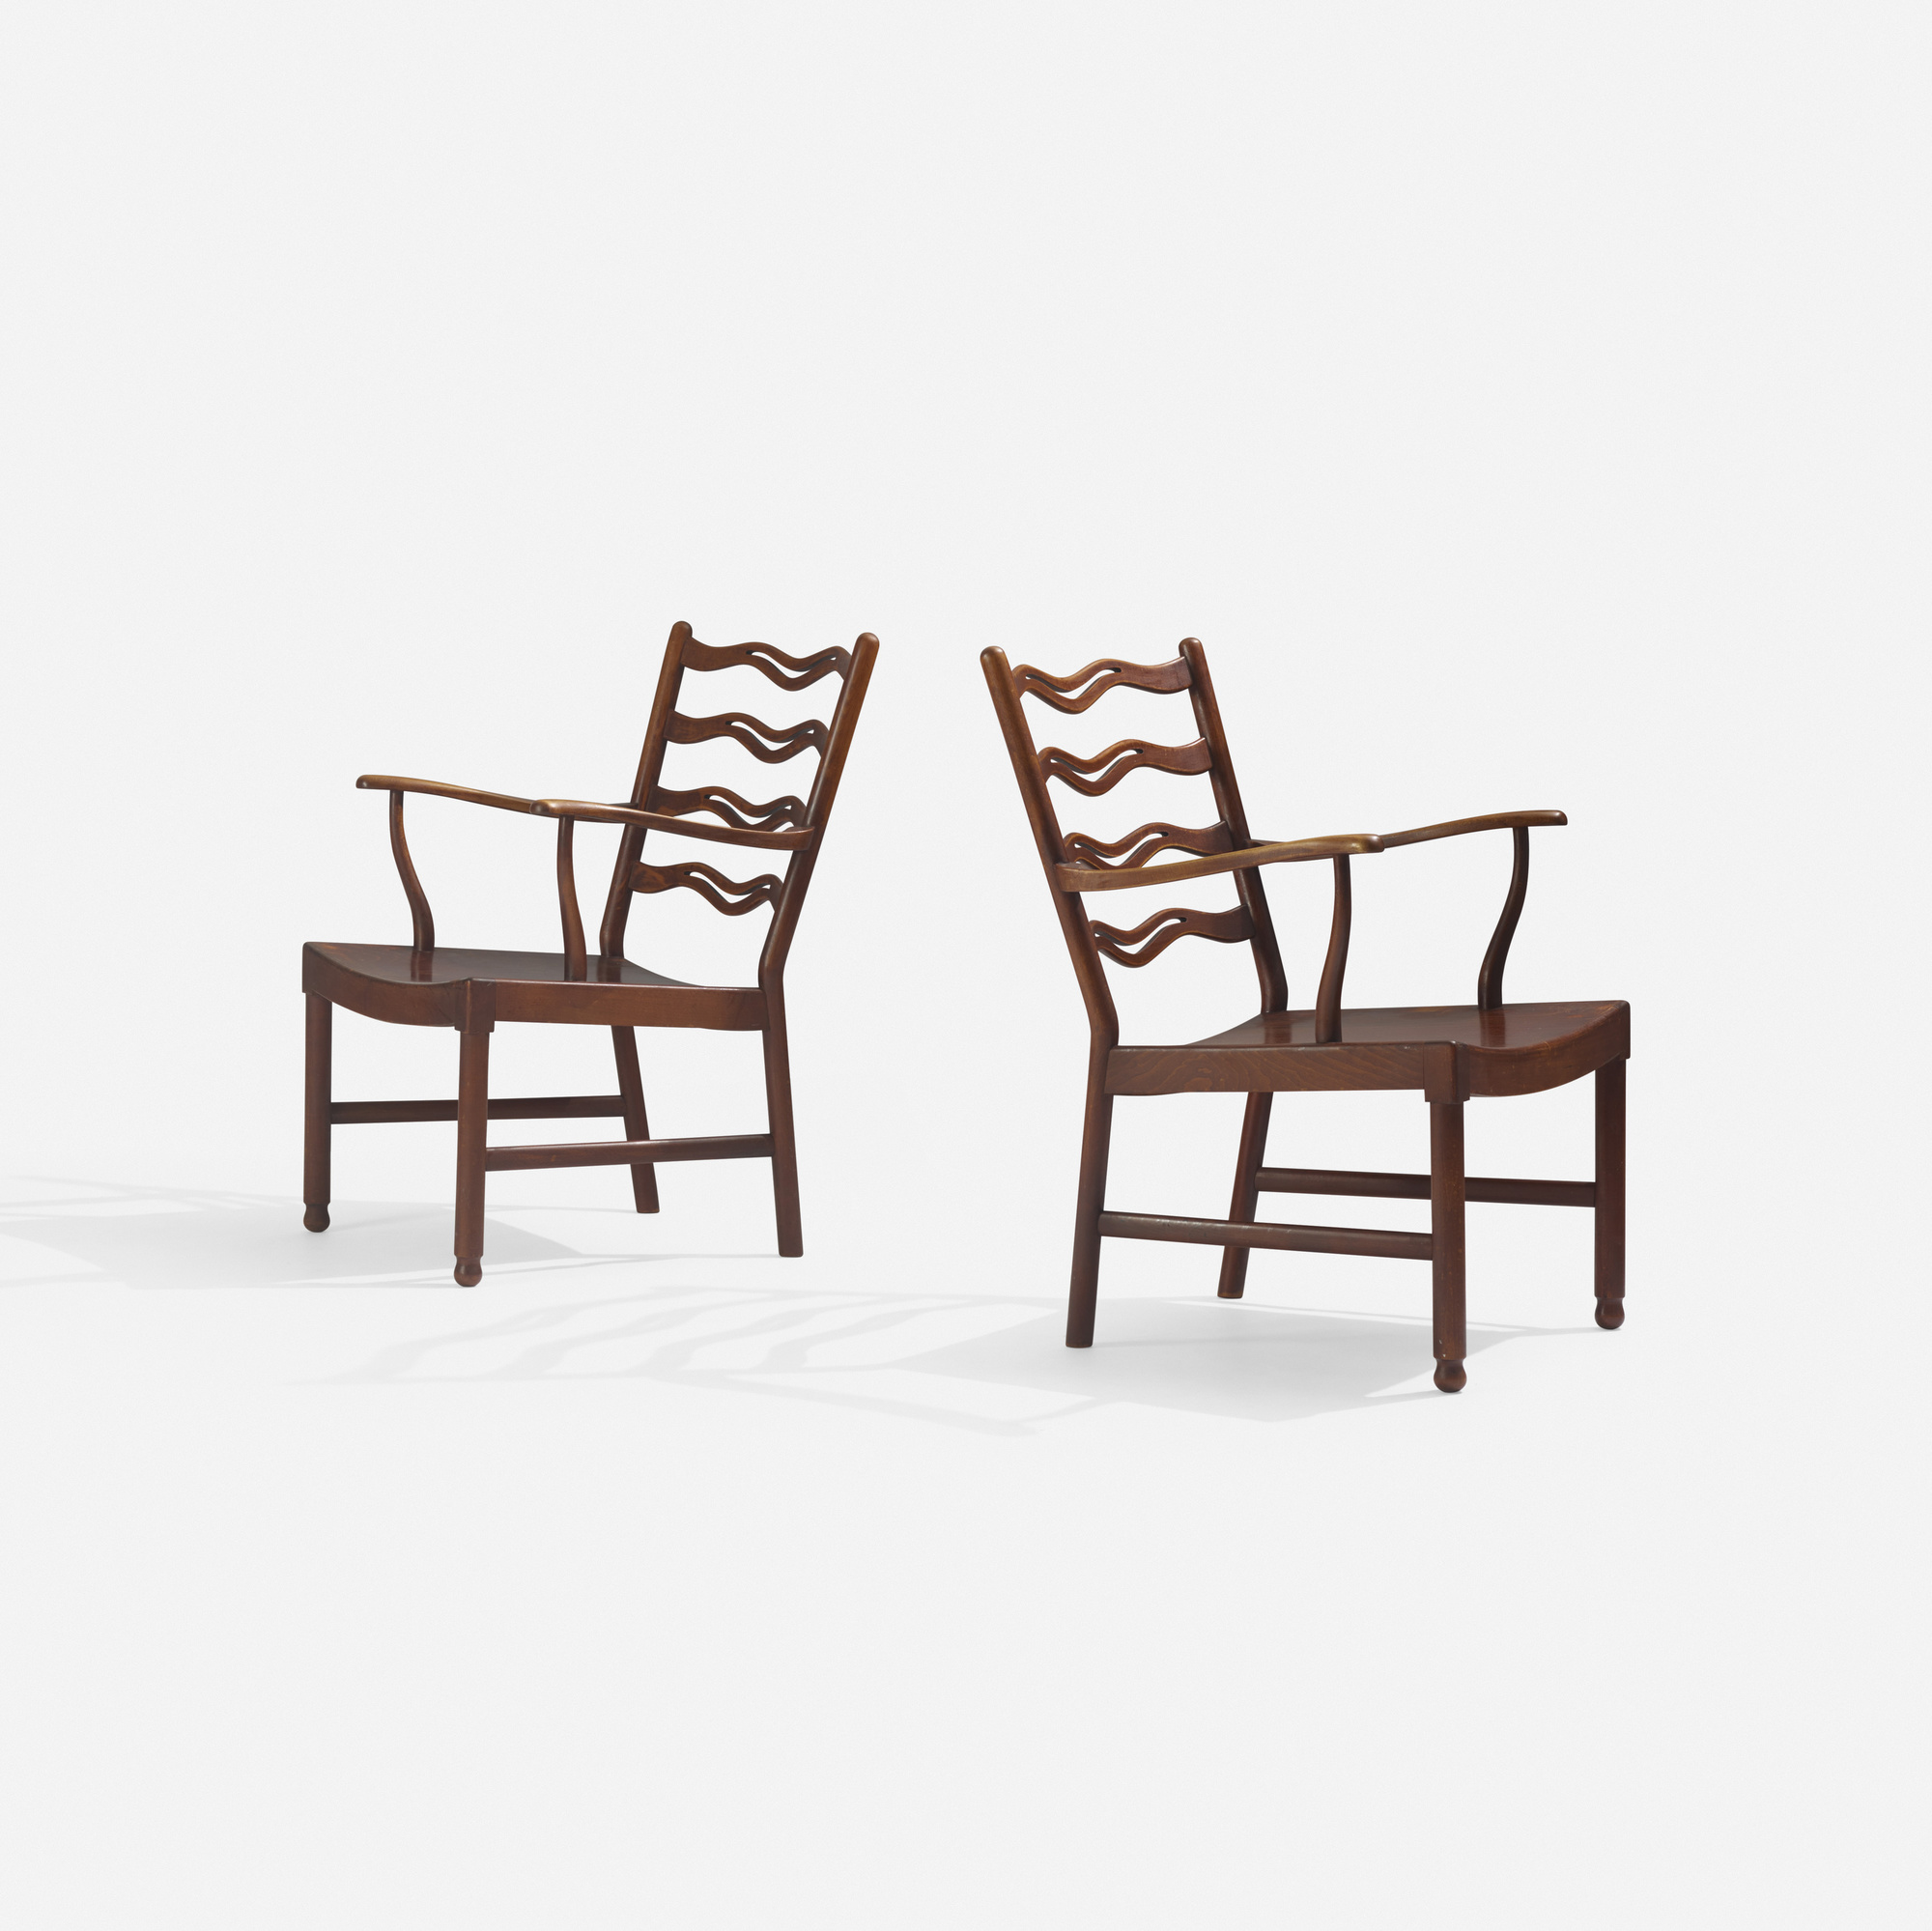 269: Ole Wanscher / lounge chairs, pair (2 of 2)